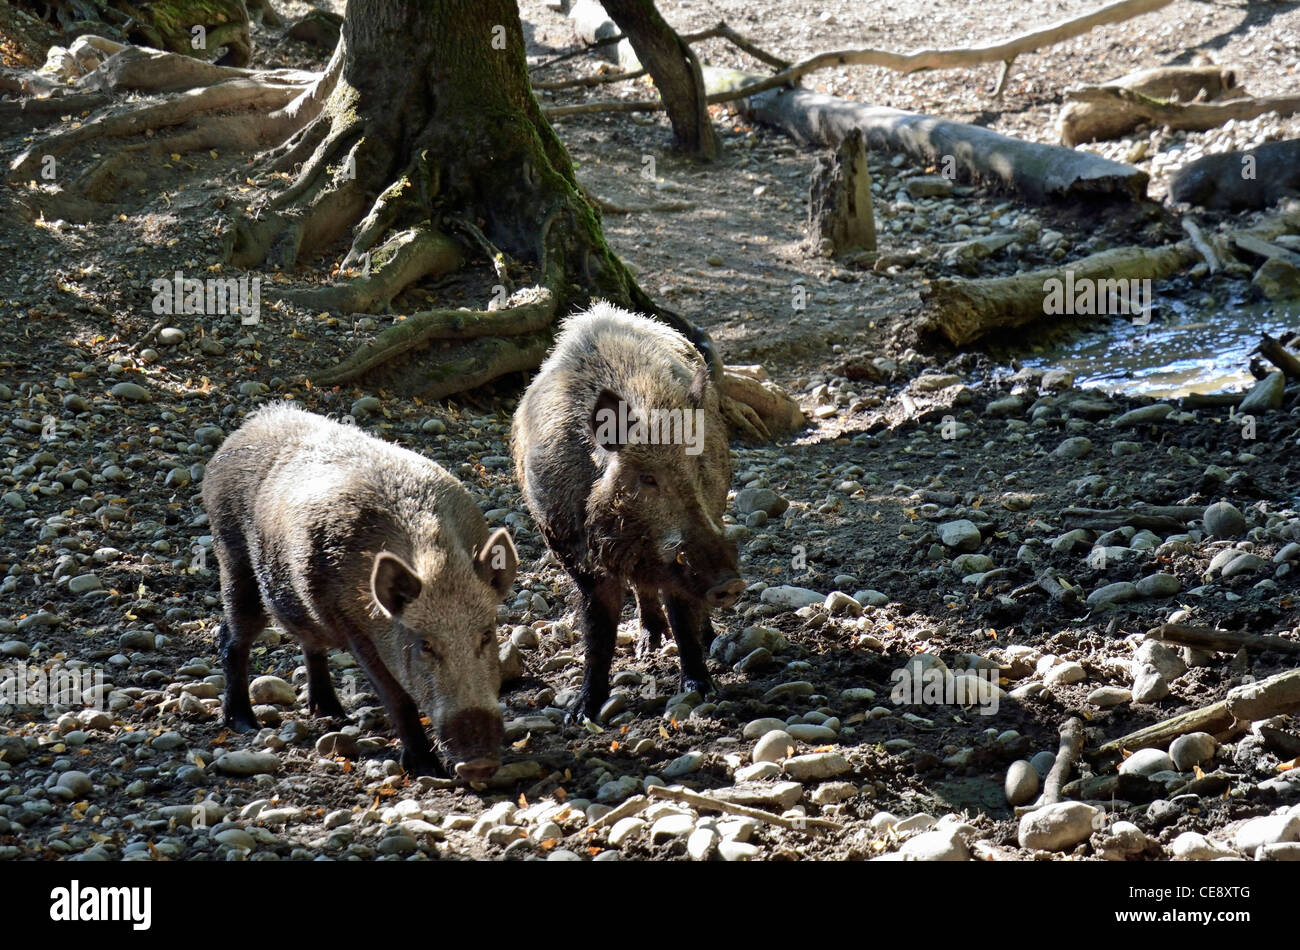 Couple of wild boars in forest, Isère, France - Stock Image